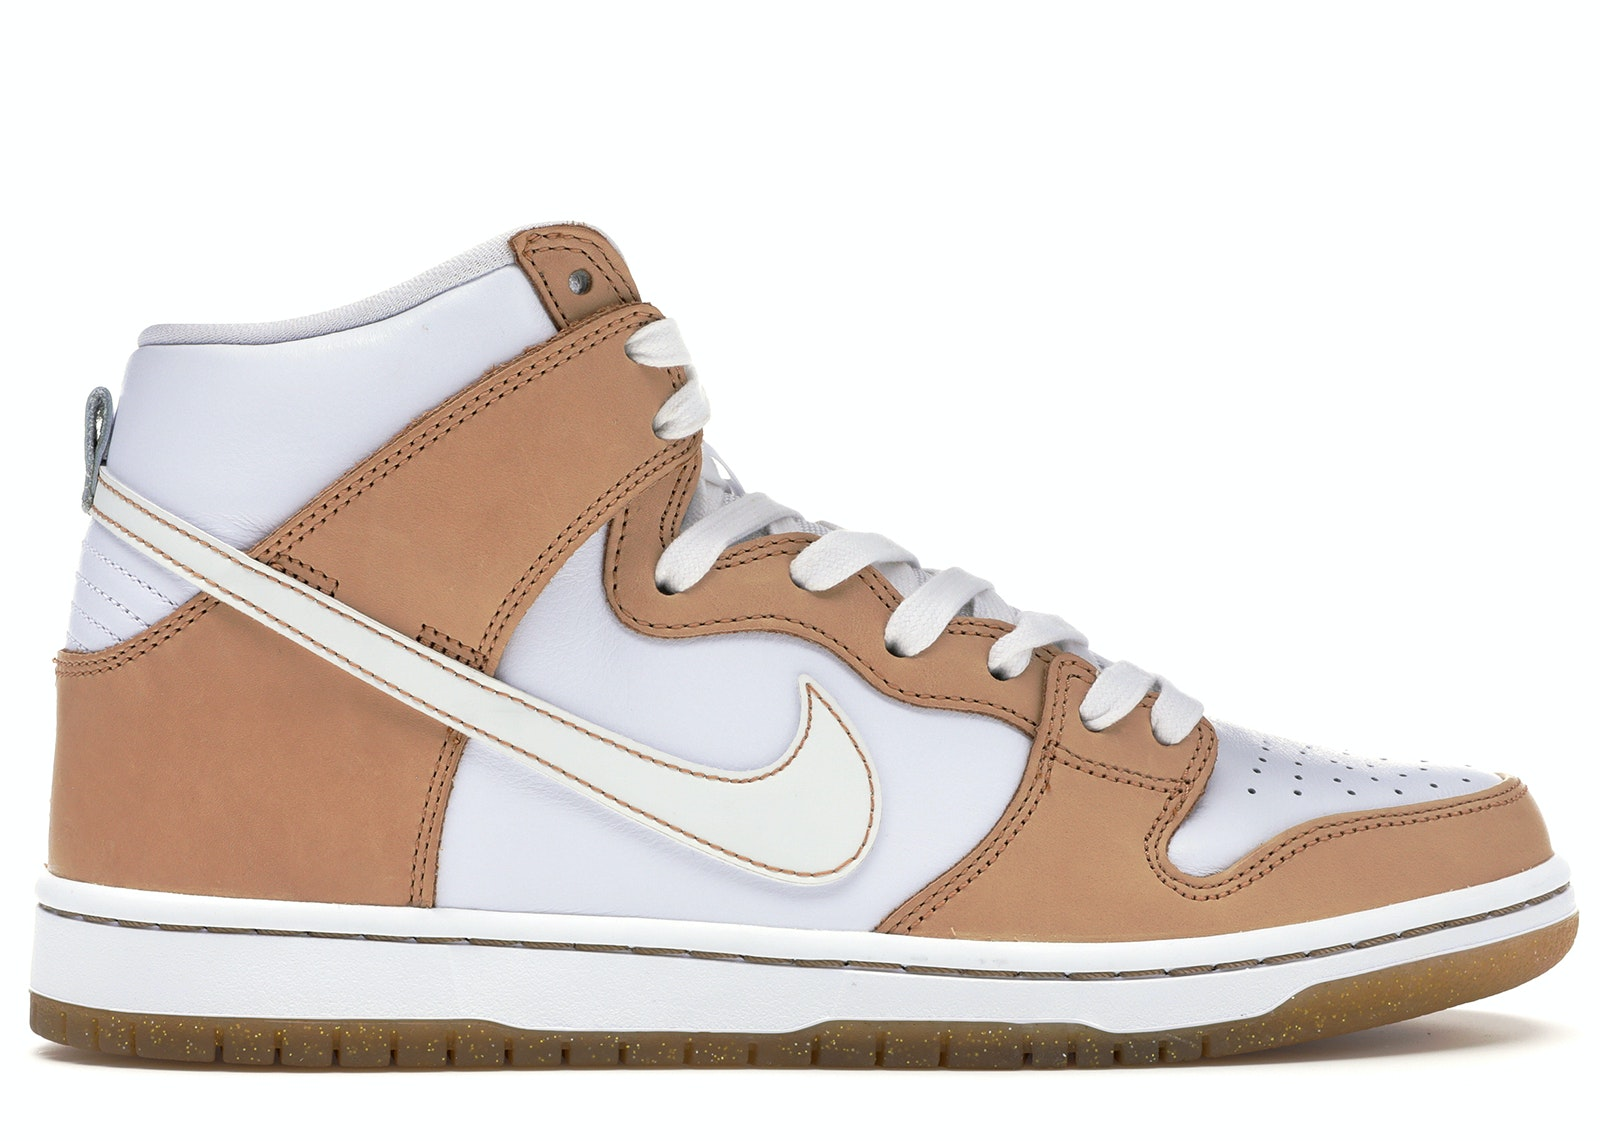 Nike SB Dunk High Premier Win Some Lose Some